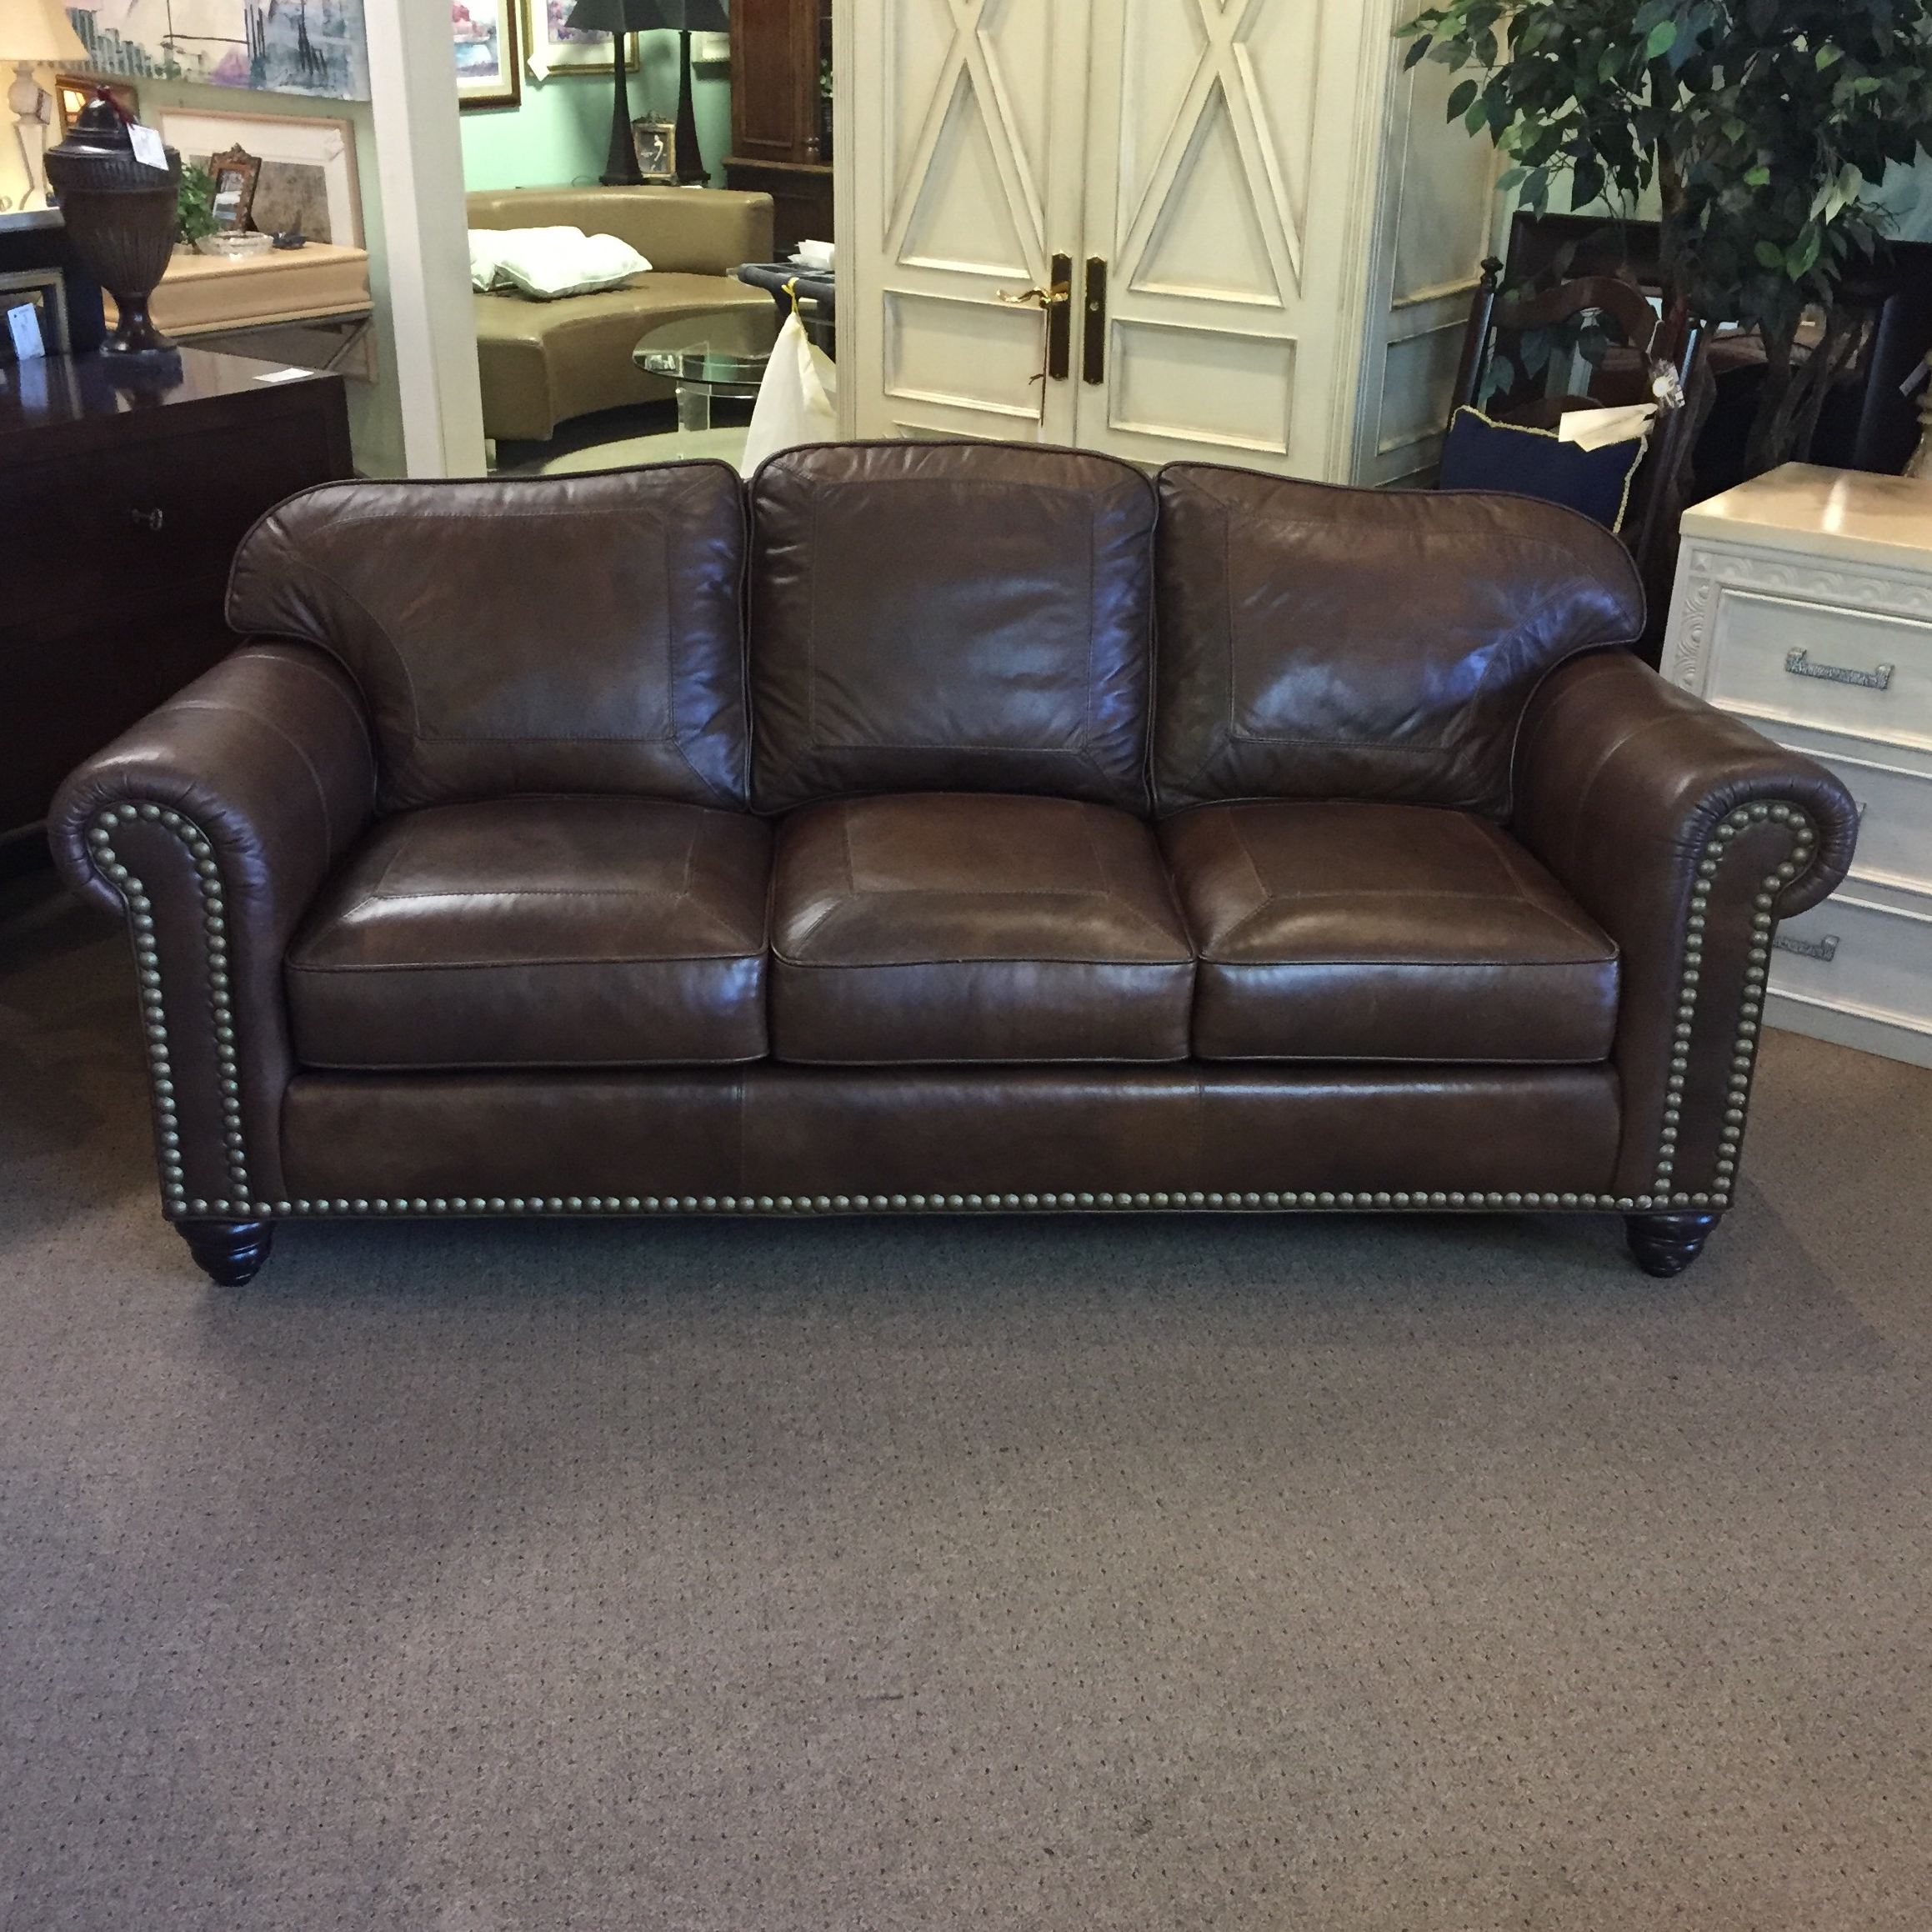 Genial Whittemore Sherrill Leather Sofa   Image 2 Of 11